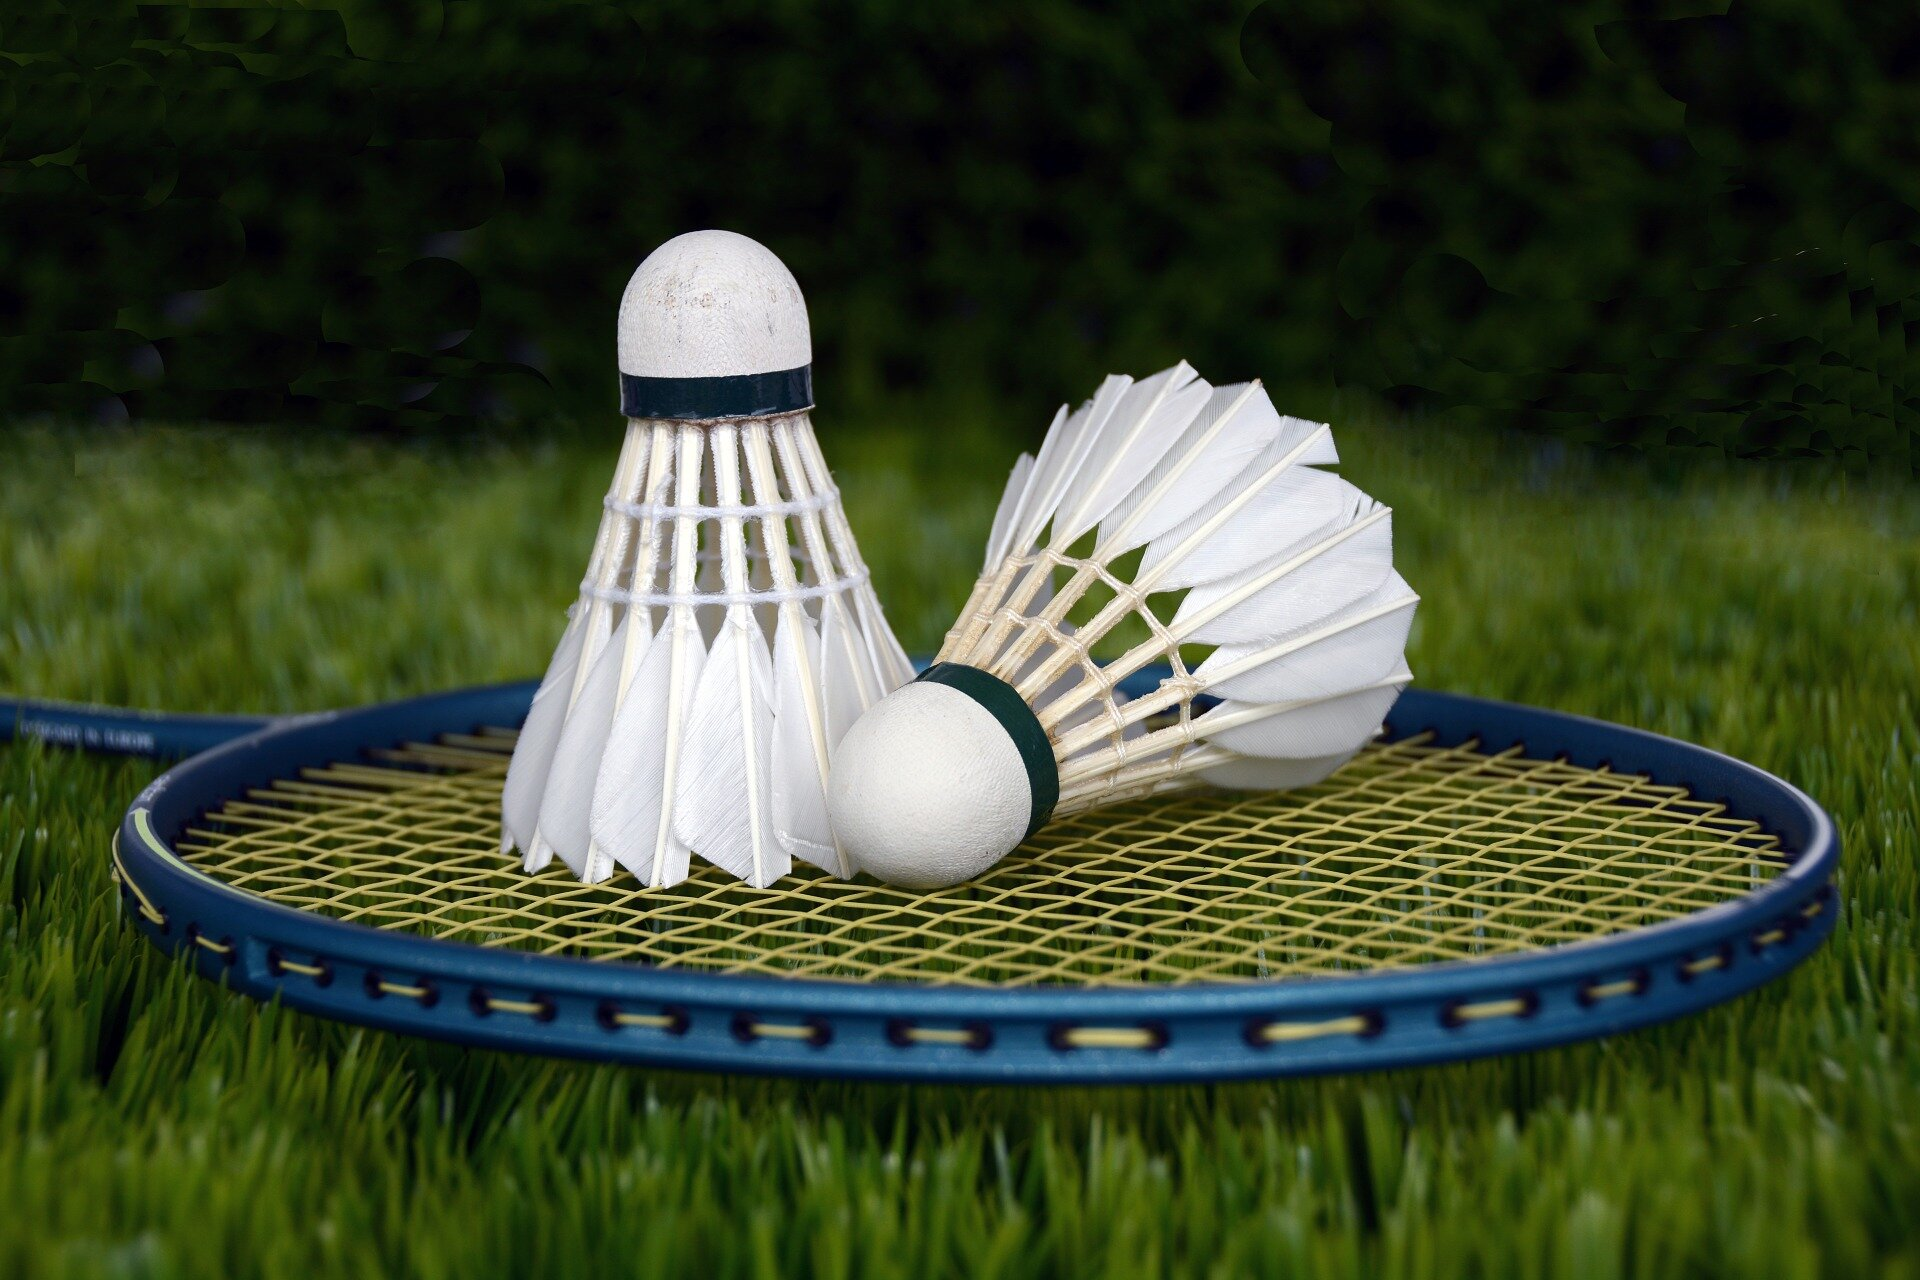 Doubles badminton players may be at highest risk of serious eye injury during play